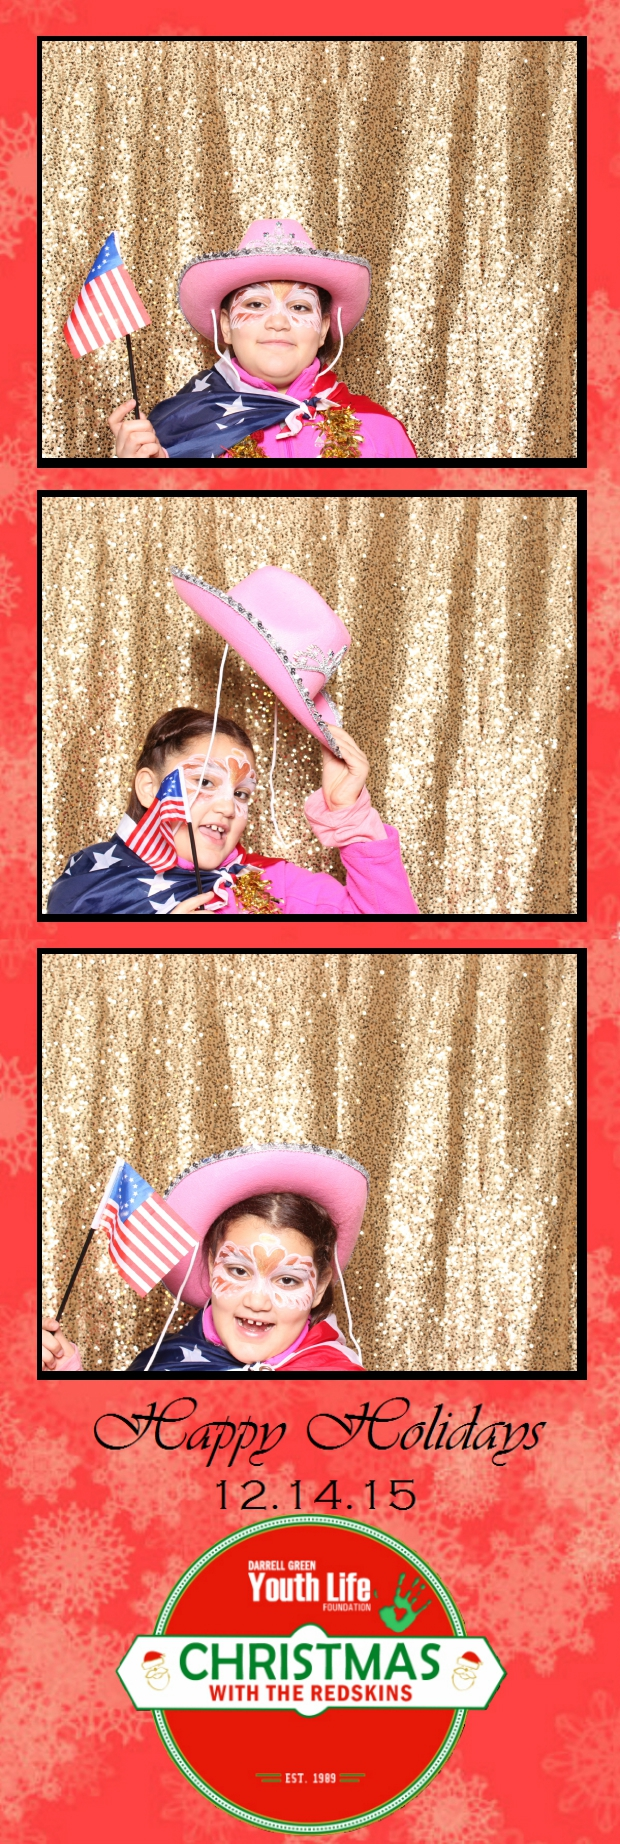 Guest House Events Photo Booth DGYLF Strips (44).jpg